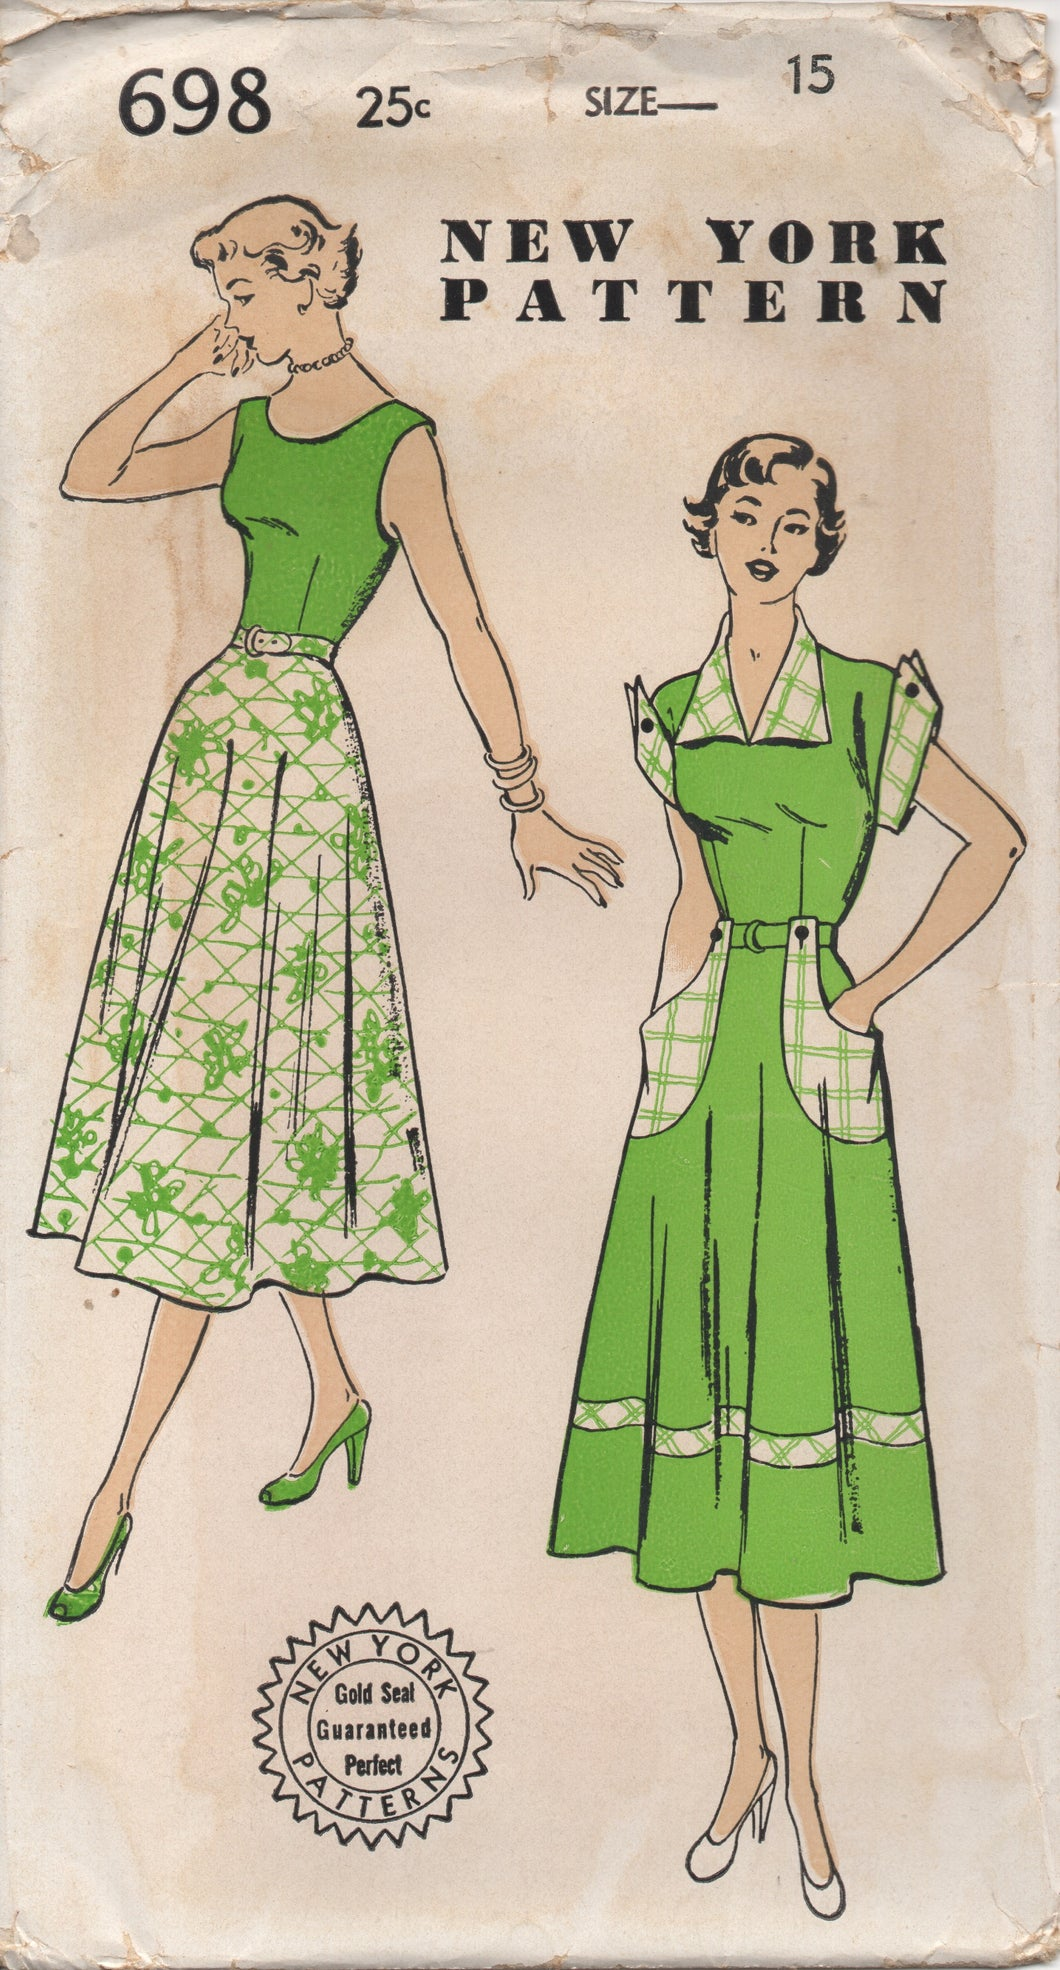 1940's New York One Piece Dress with Large Pockets, Cuffs and Collar - Bust 33